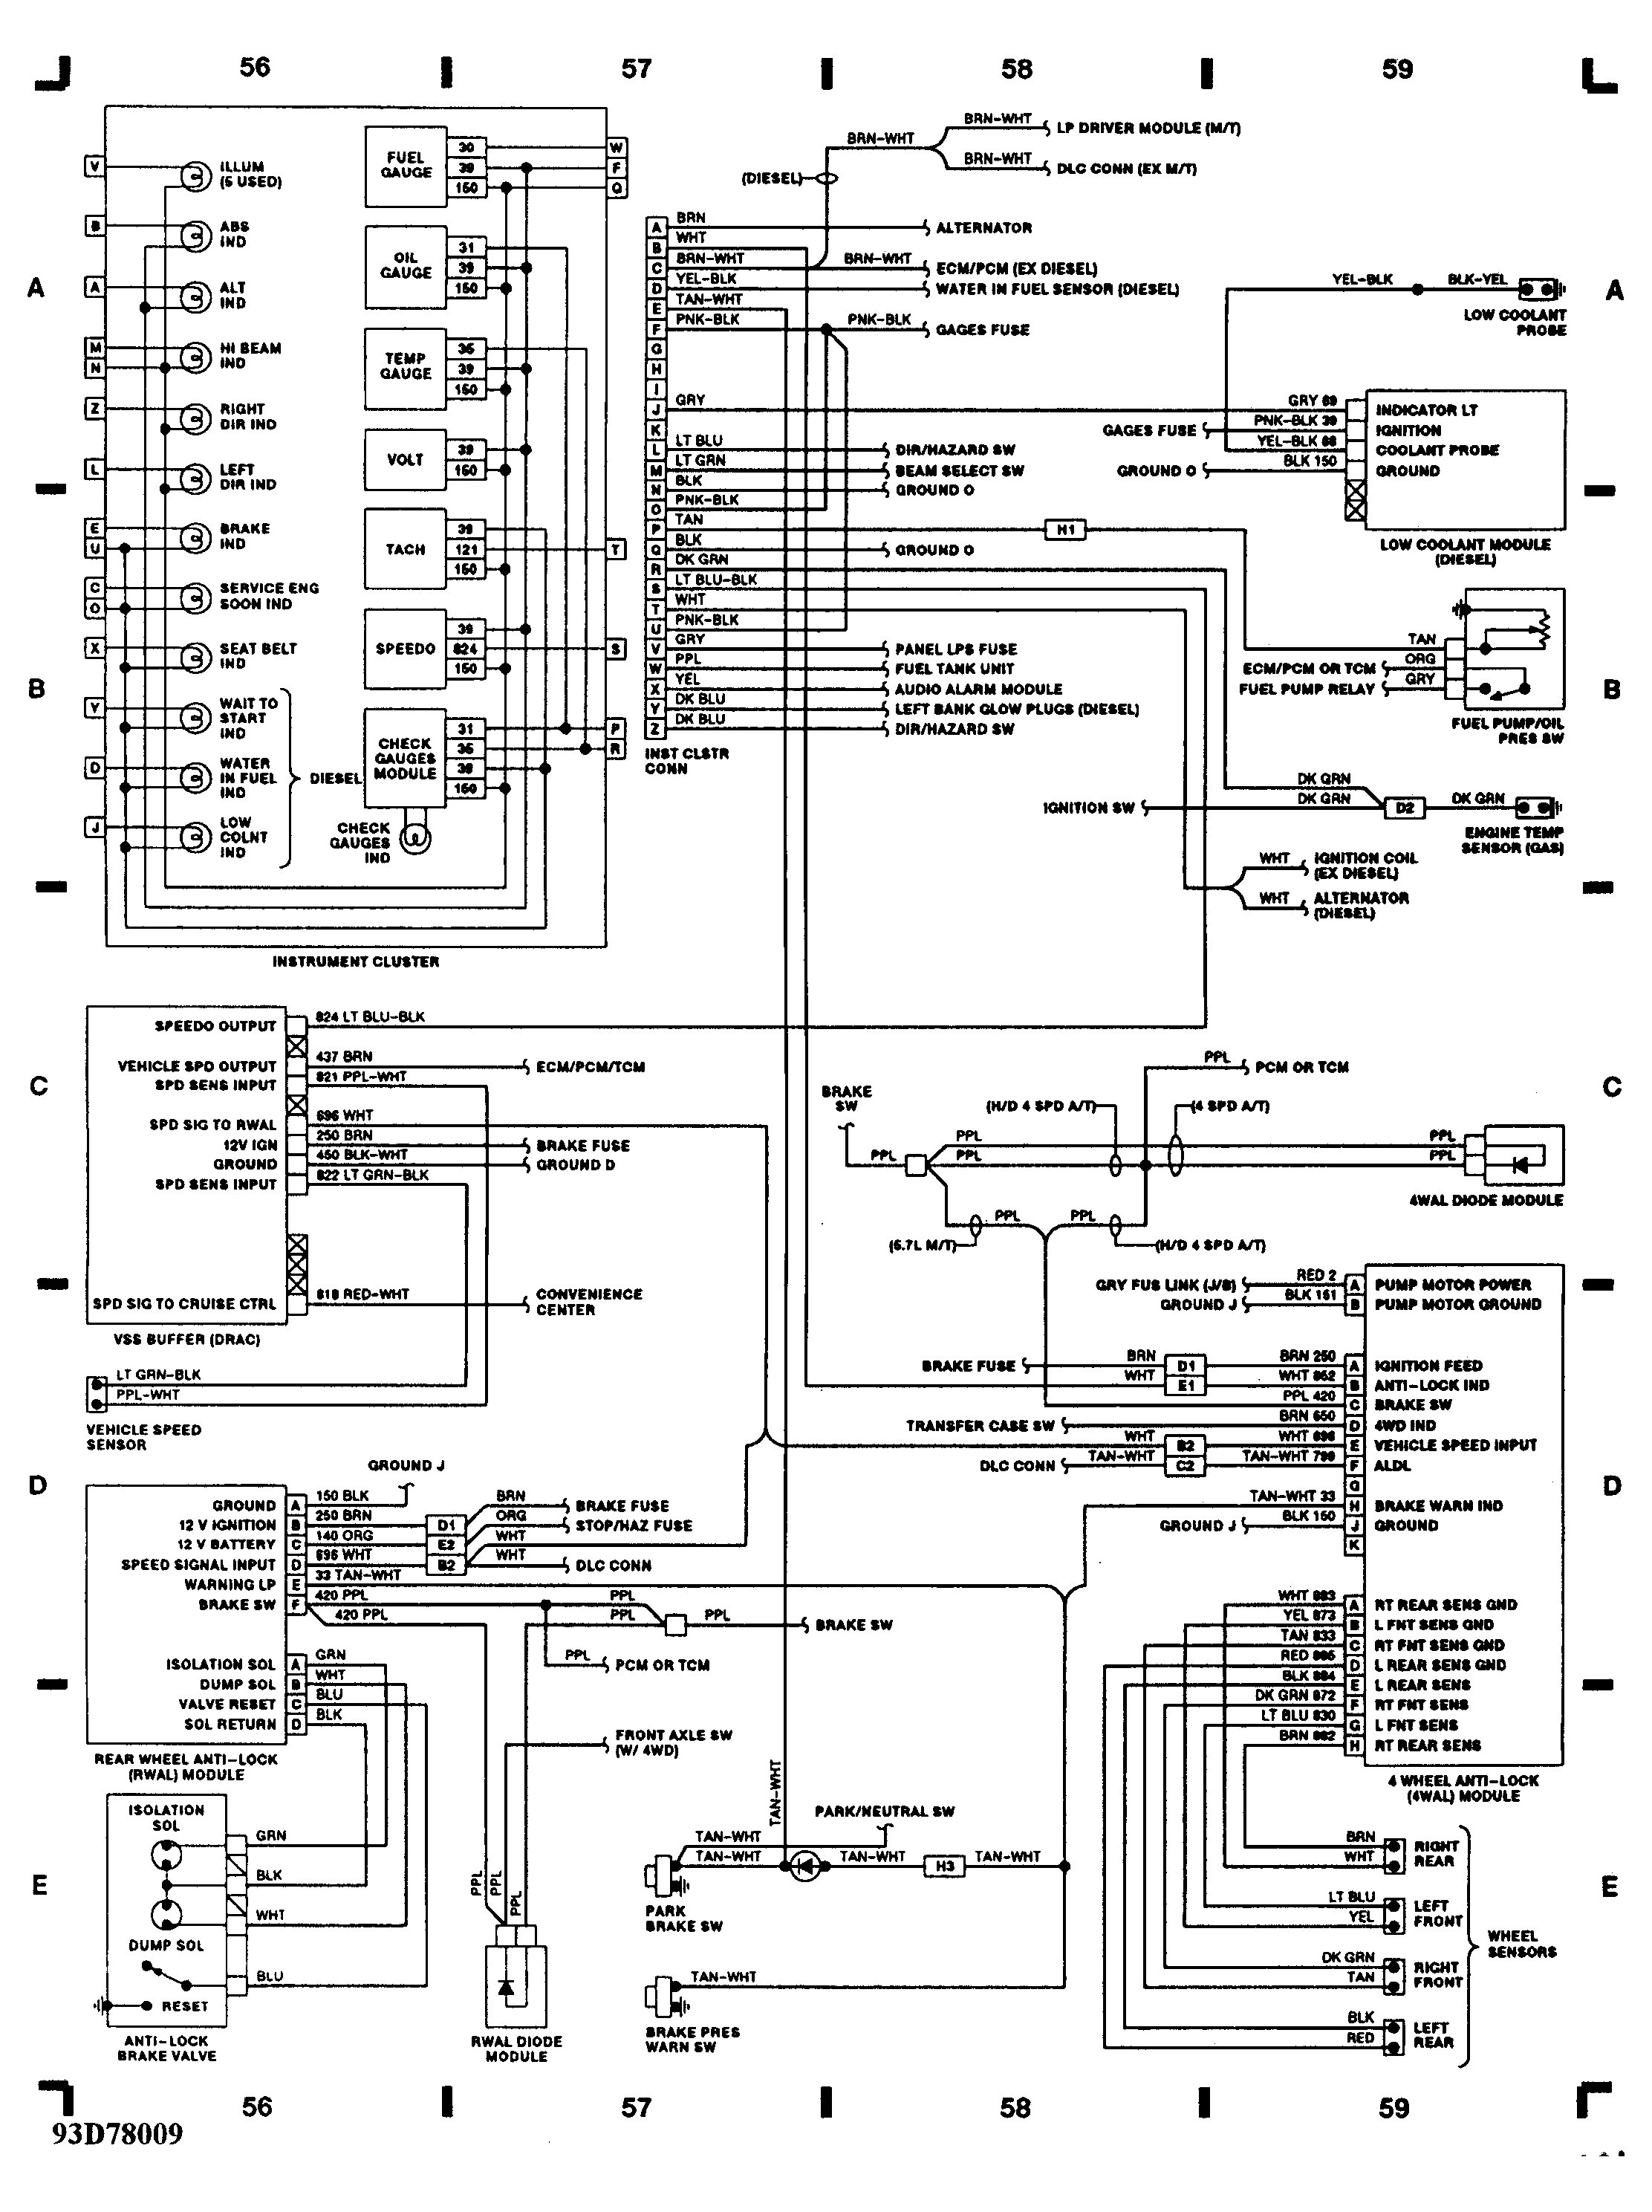 3 1 Liter Gm Engine Diagram Great Installation Of Wiring 98 Chevy Lumina 4 L Schematic Diagrams Rh 45 Koch Foerderbandtrommeln De 53 Vortec Problems